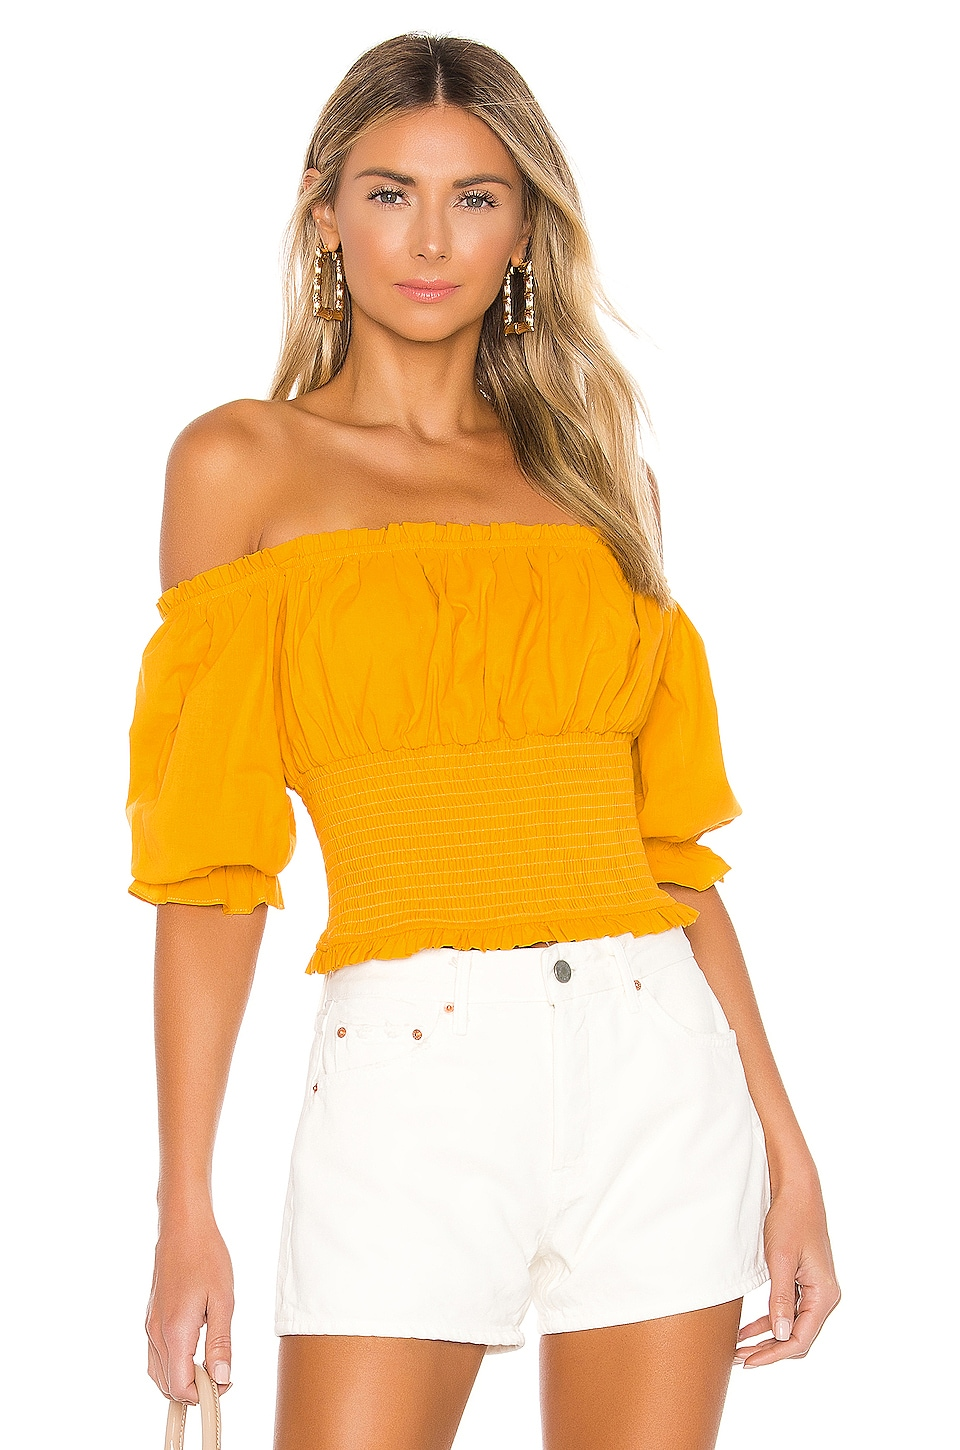 Lovers + Friends Lydia Top in Sunflower Yellow